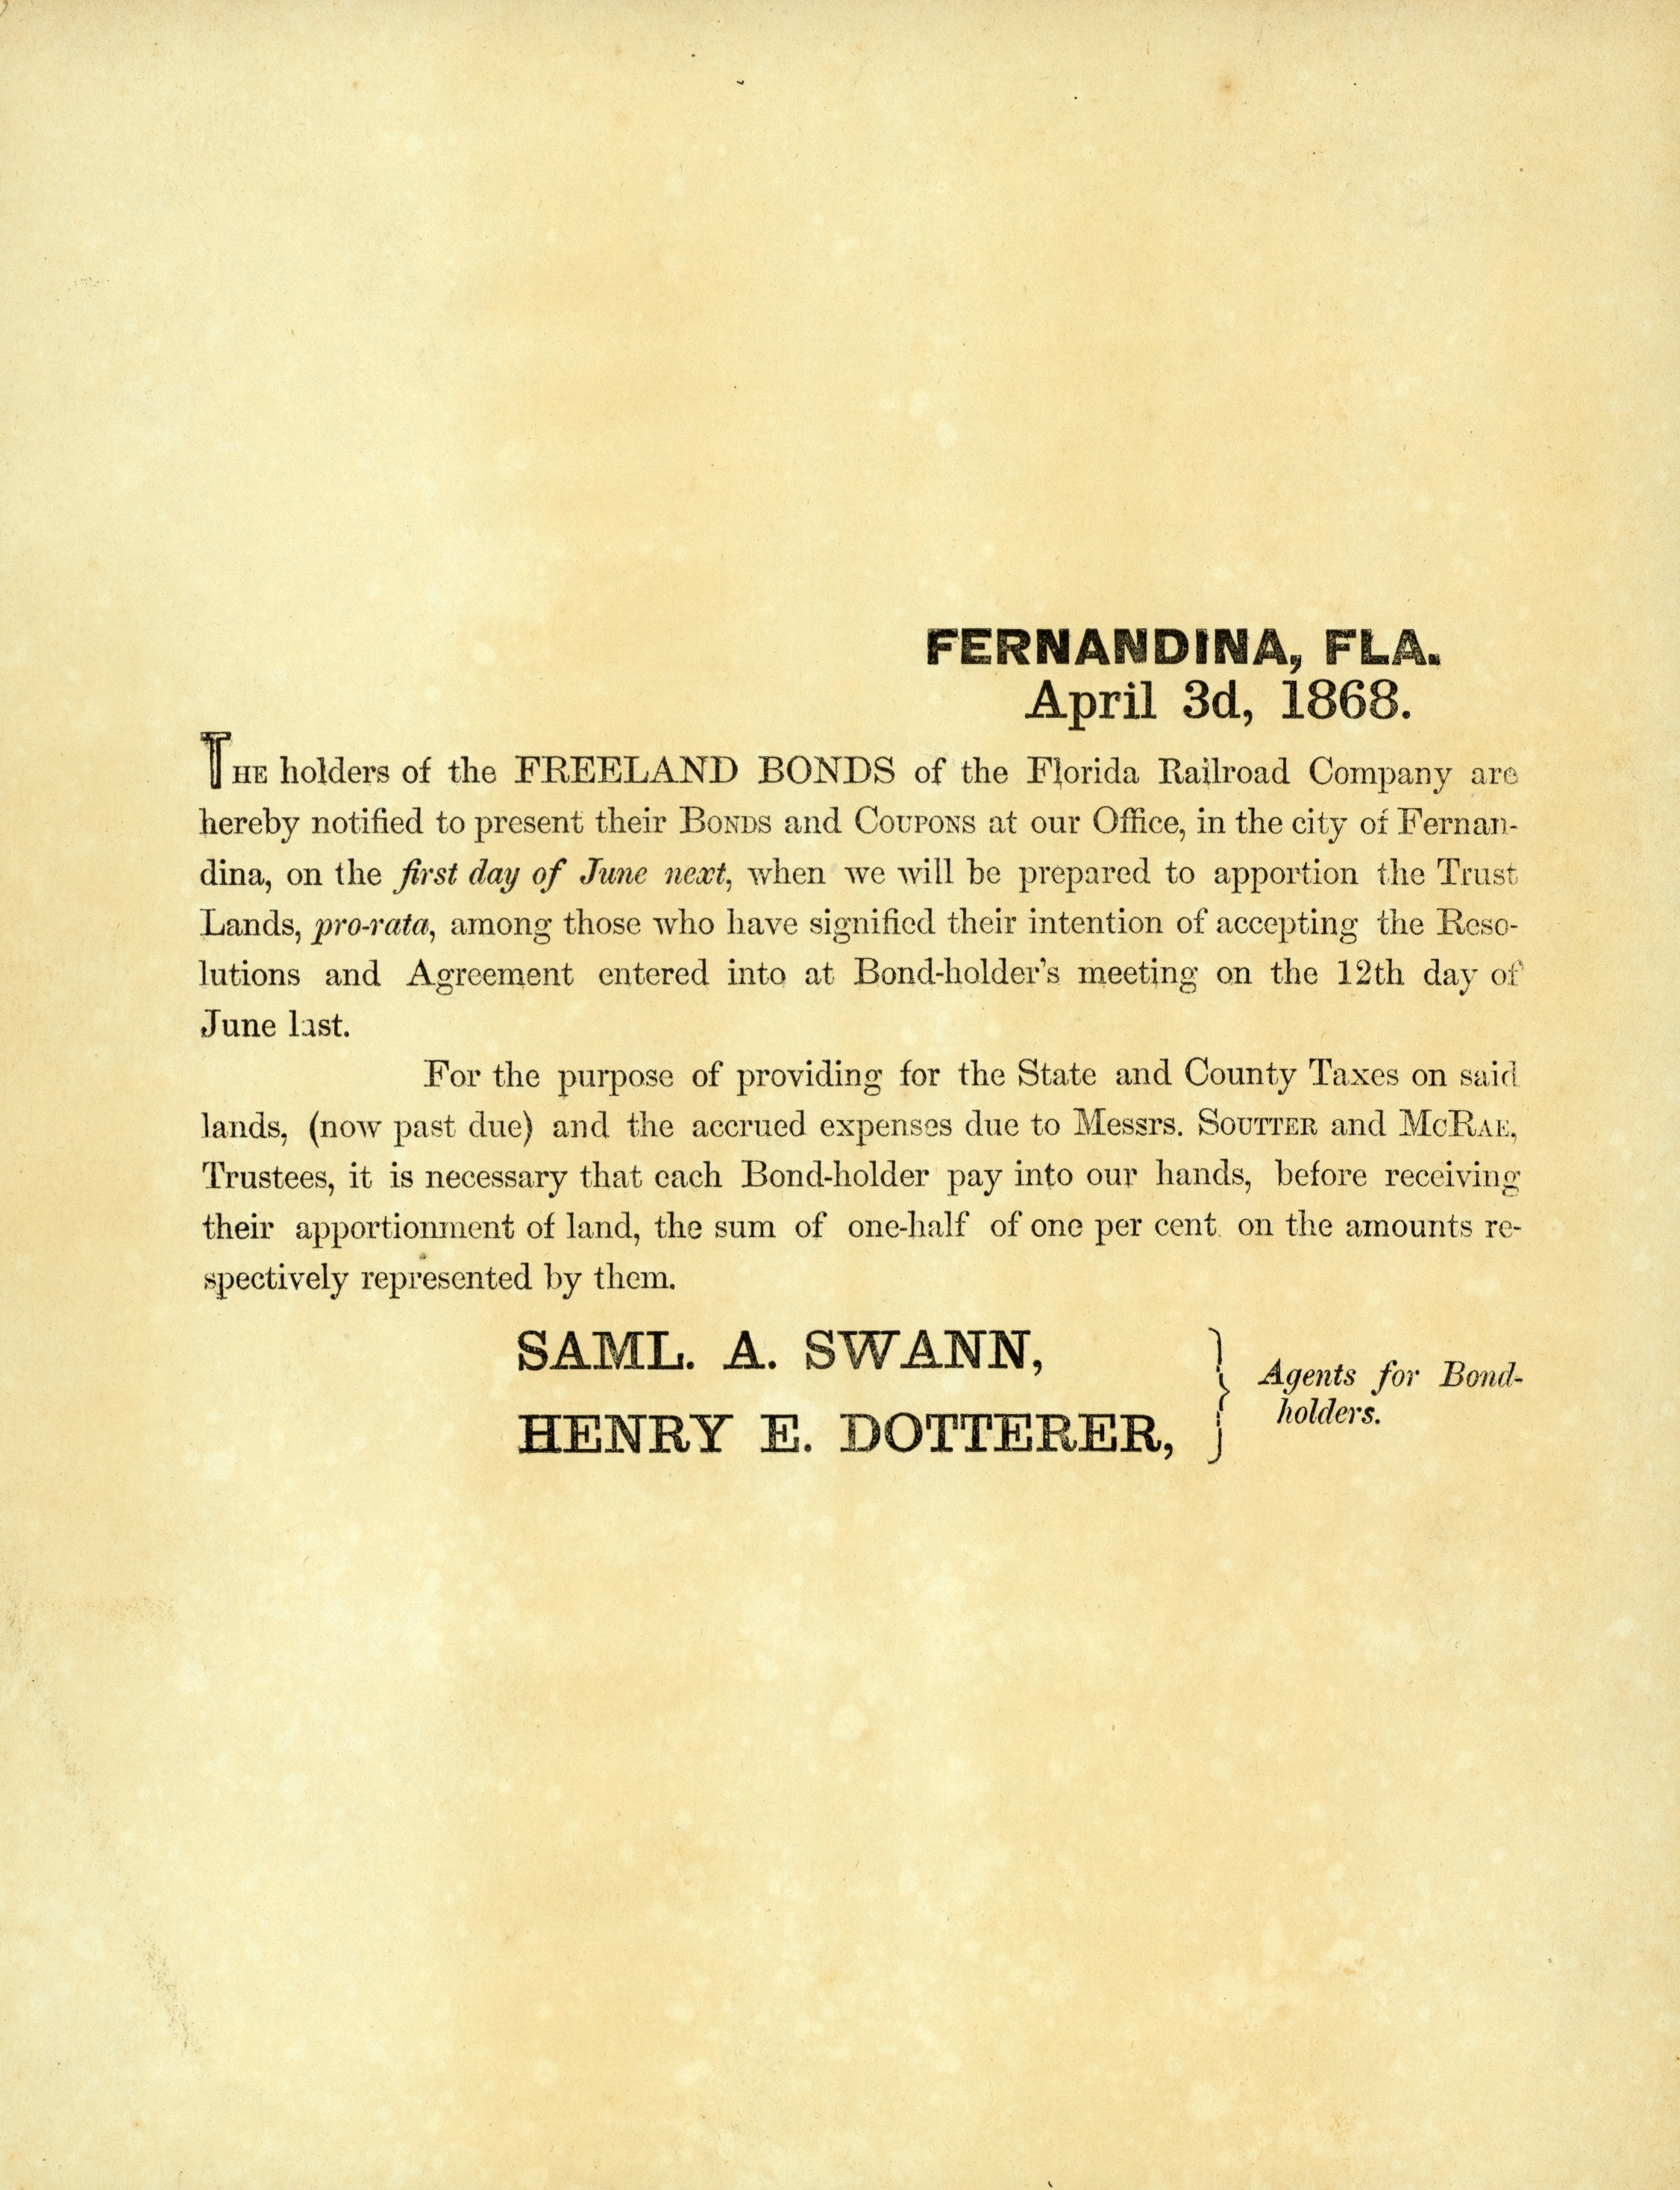 Circulars ... agent for bondholders, Samuel A. Swann.